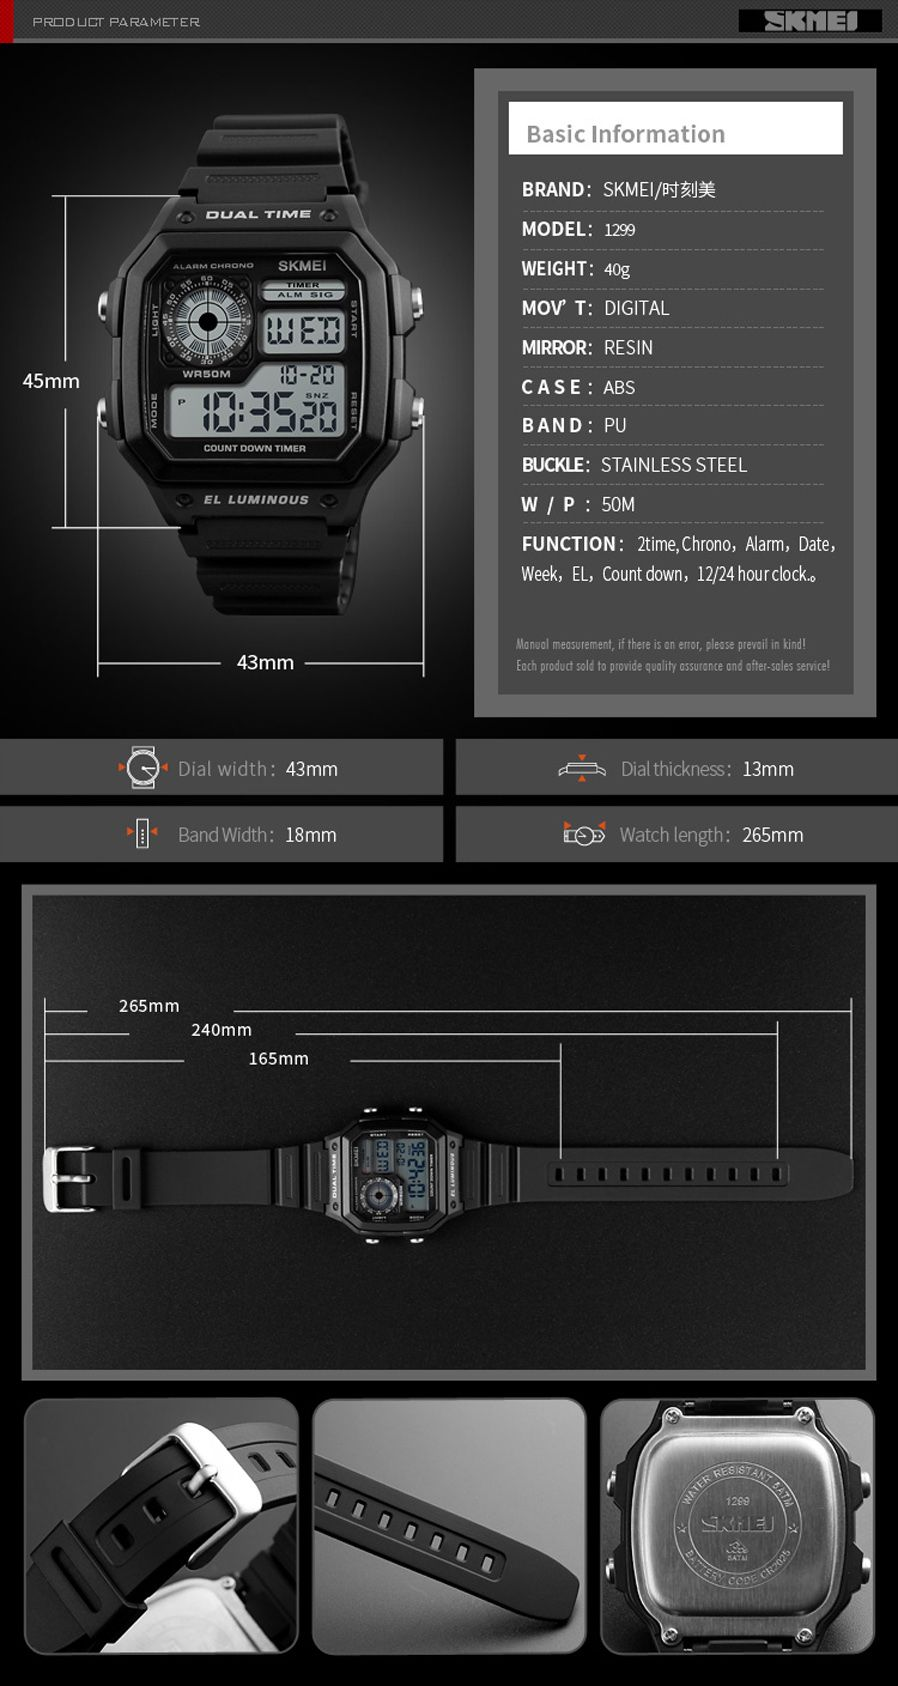 Skmei 1299 Digital Sports Watch (6)